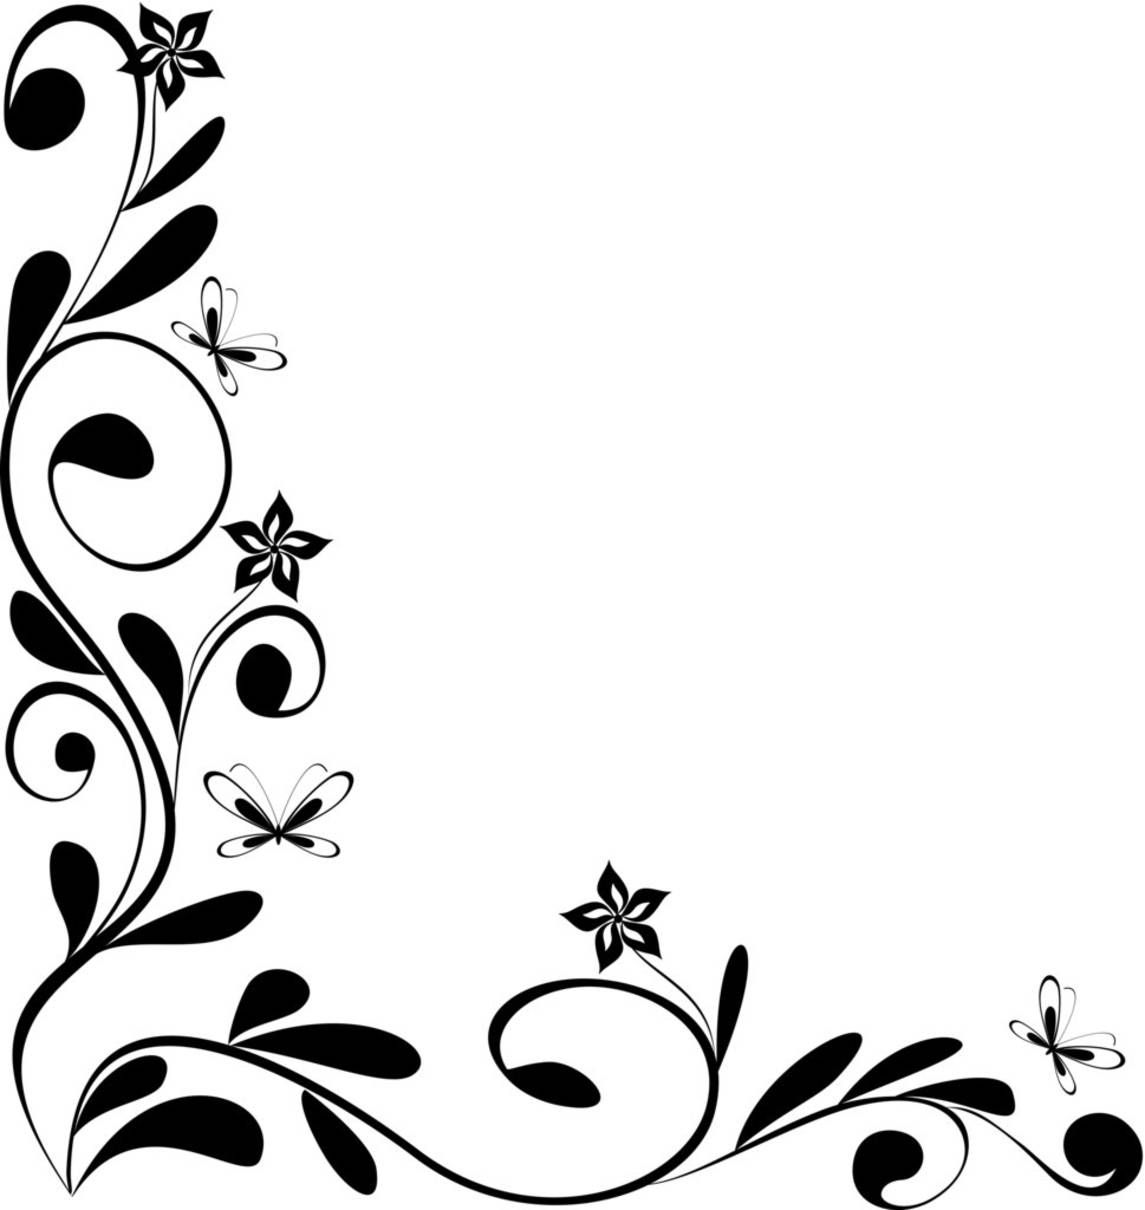 flower border clip art flower club pinterest corner border rh pinterest com coroner clip art corner clipart black and white